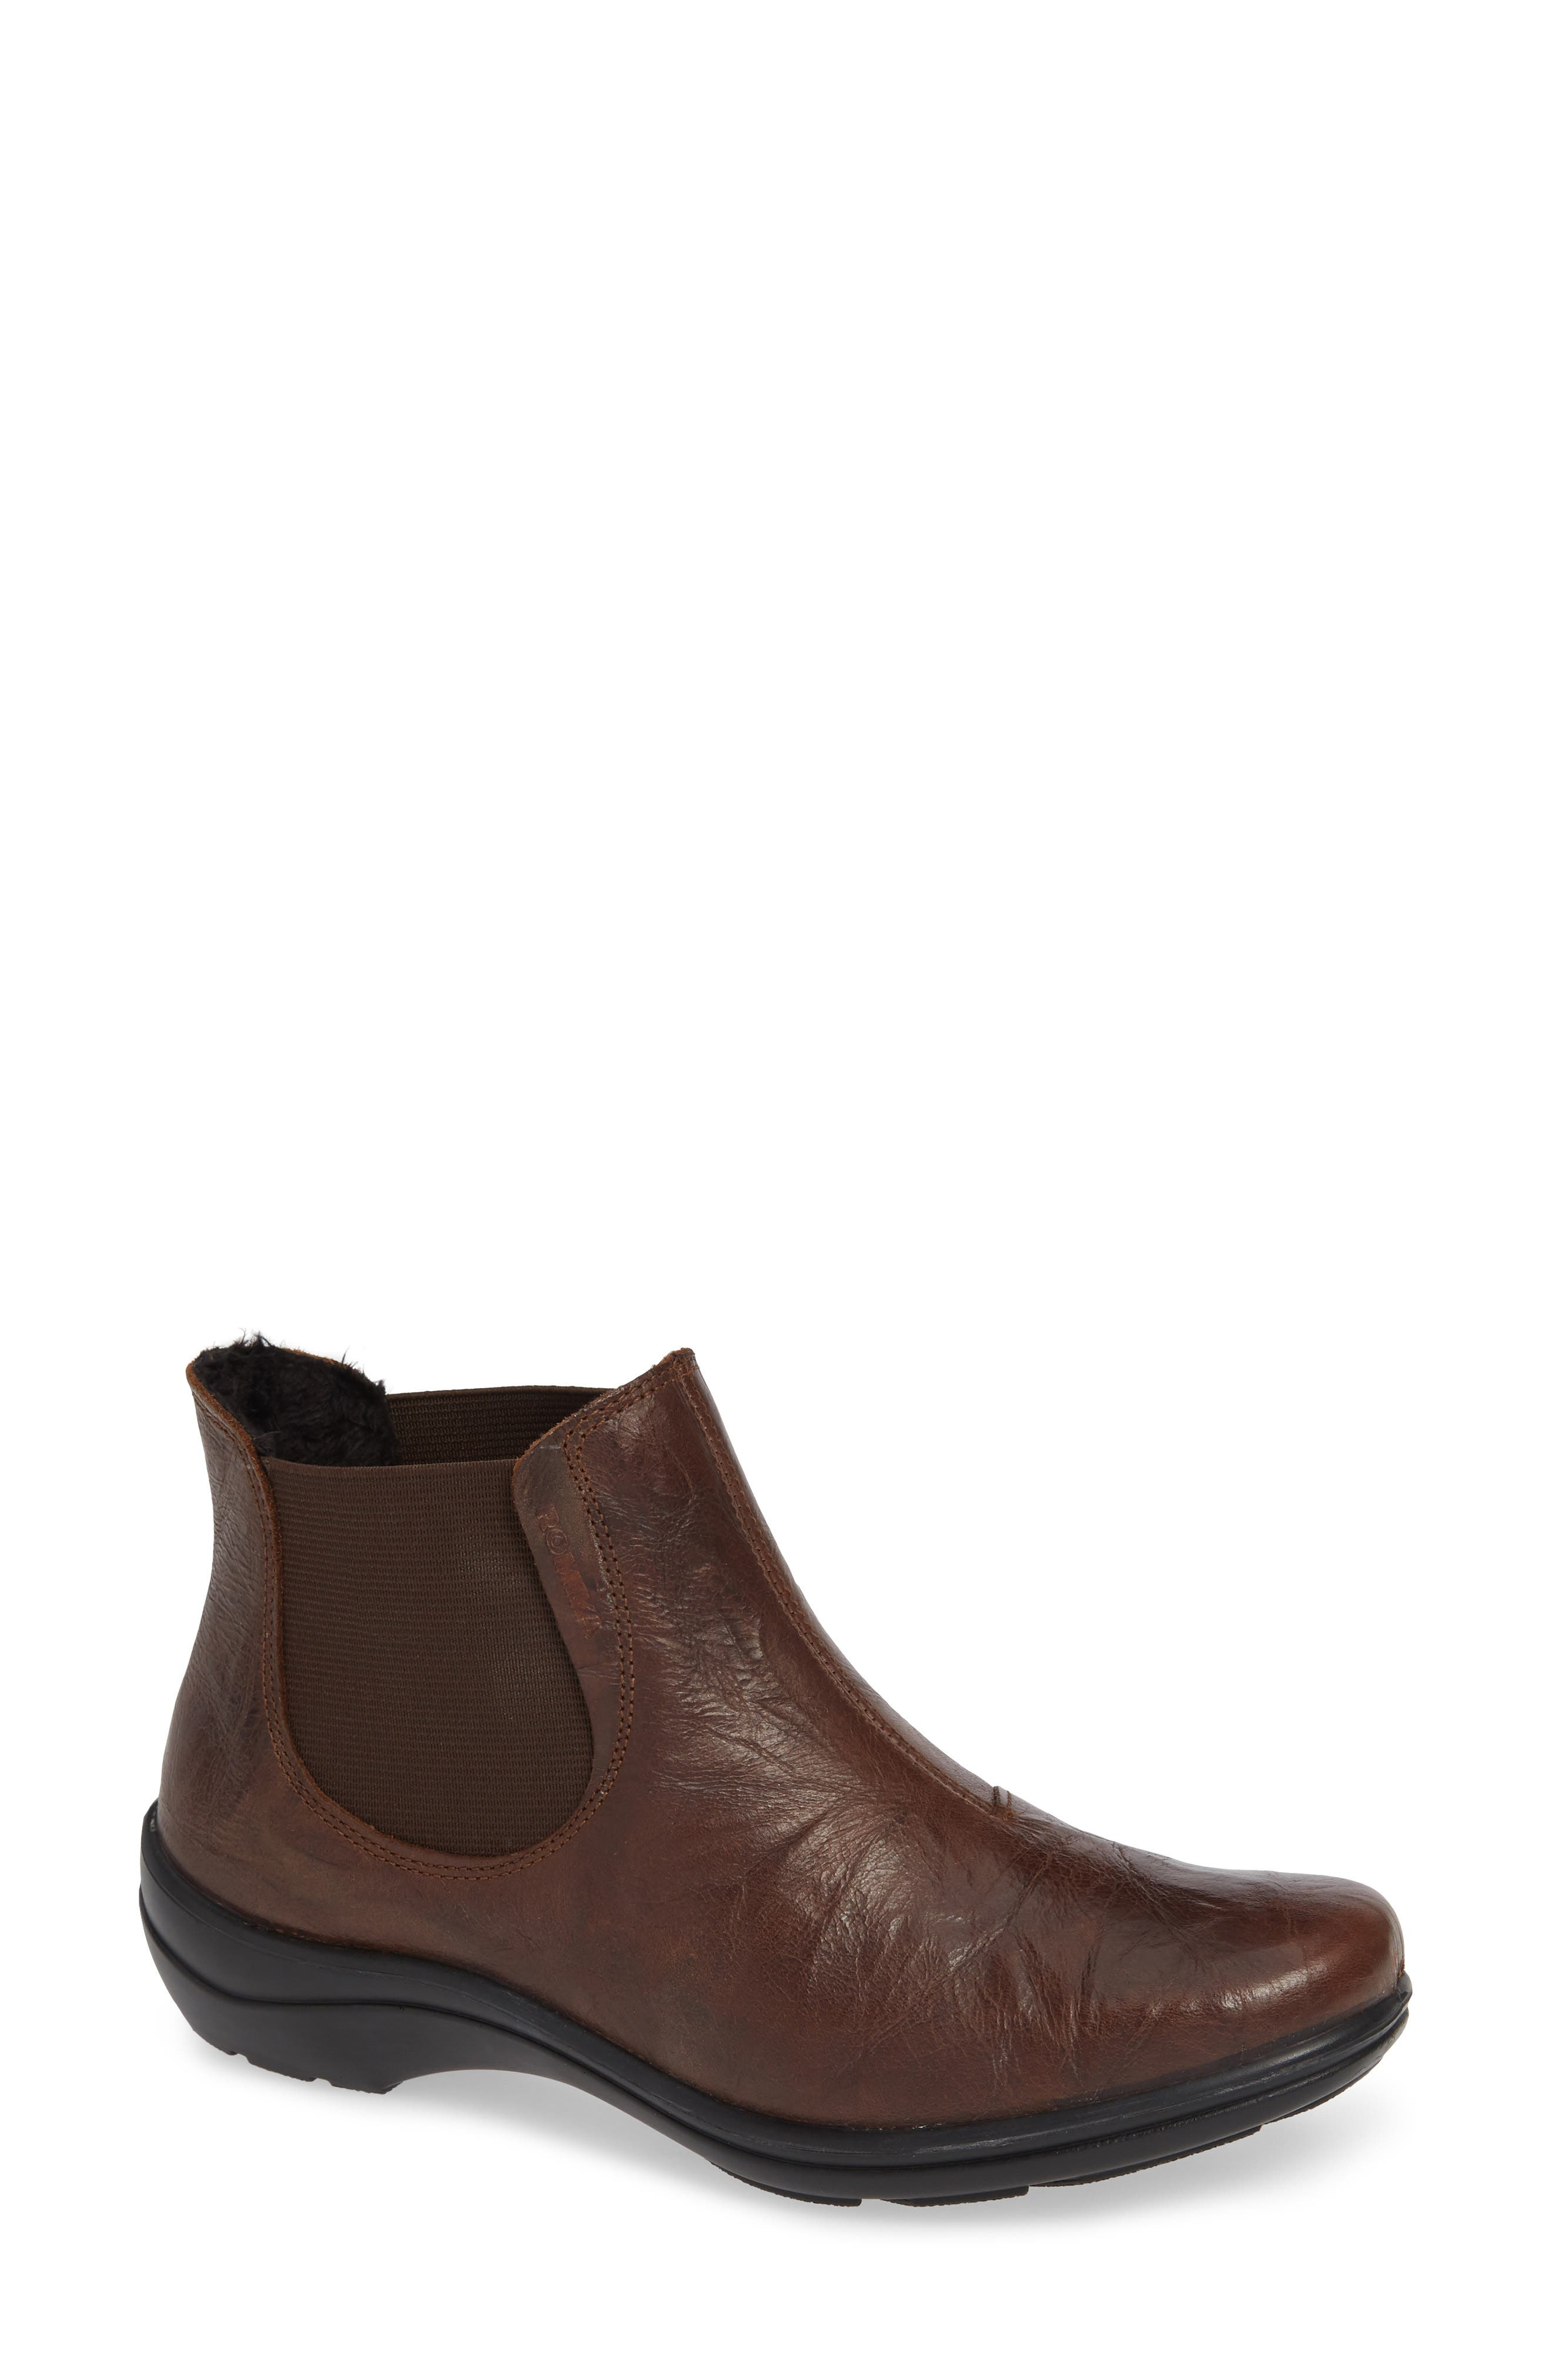 Cassie 46 Chelsea Bootie,                             Main thumbnail 1, color,                             BROWN LEATHER